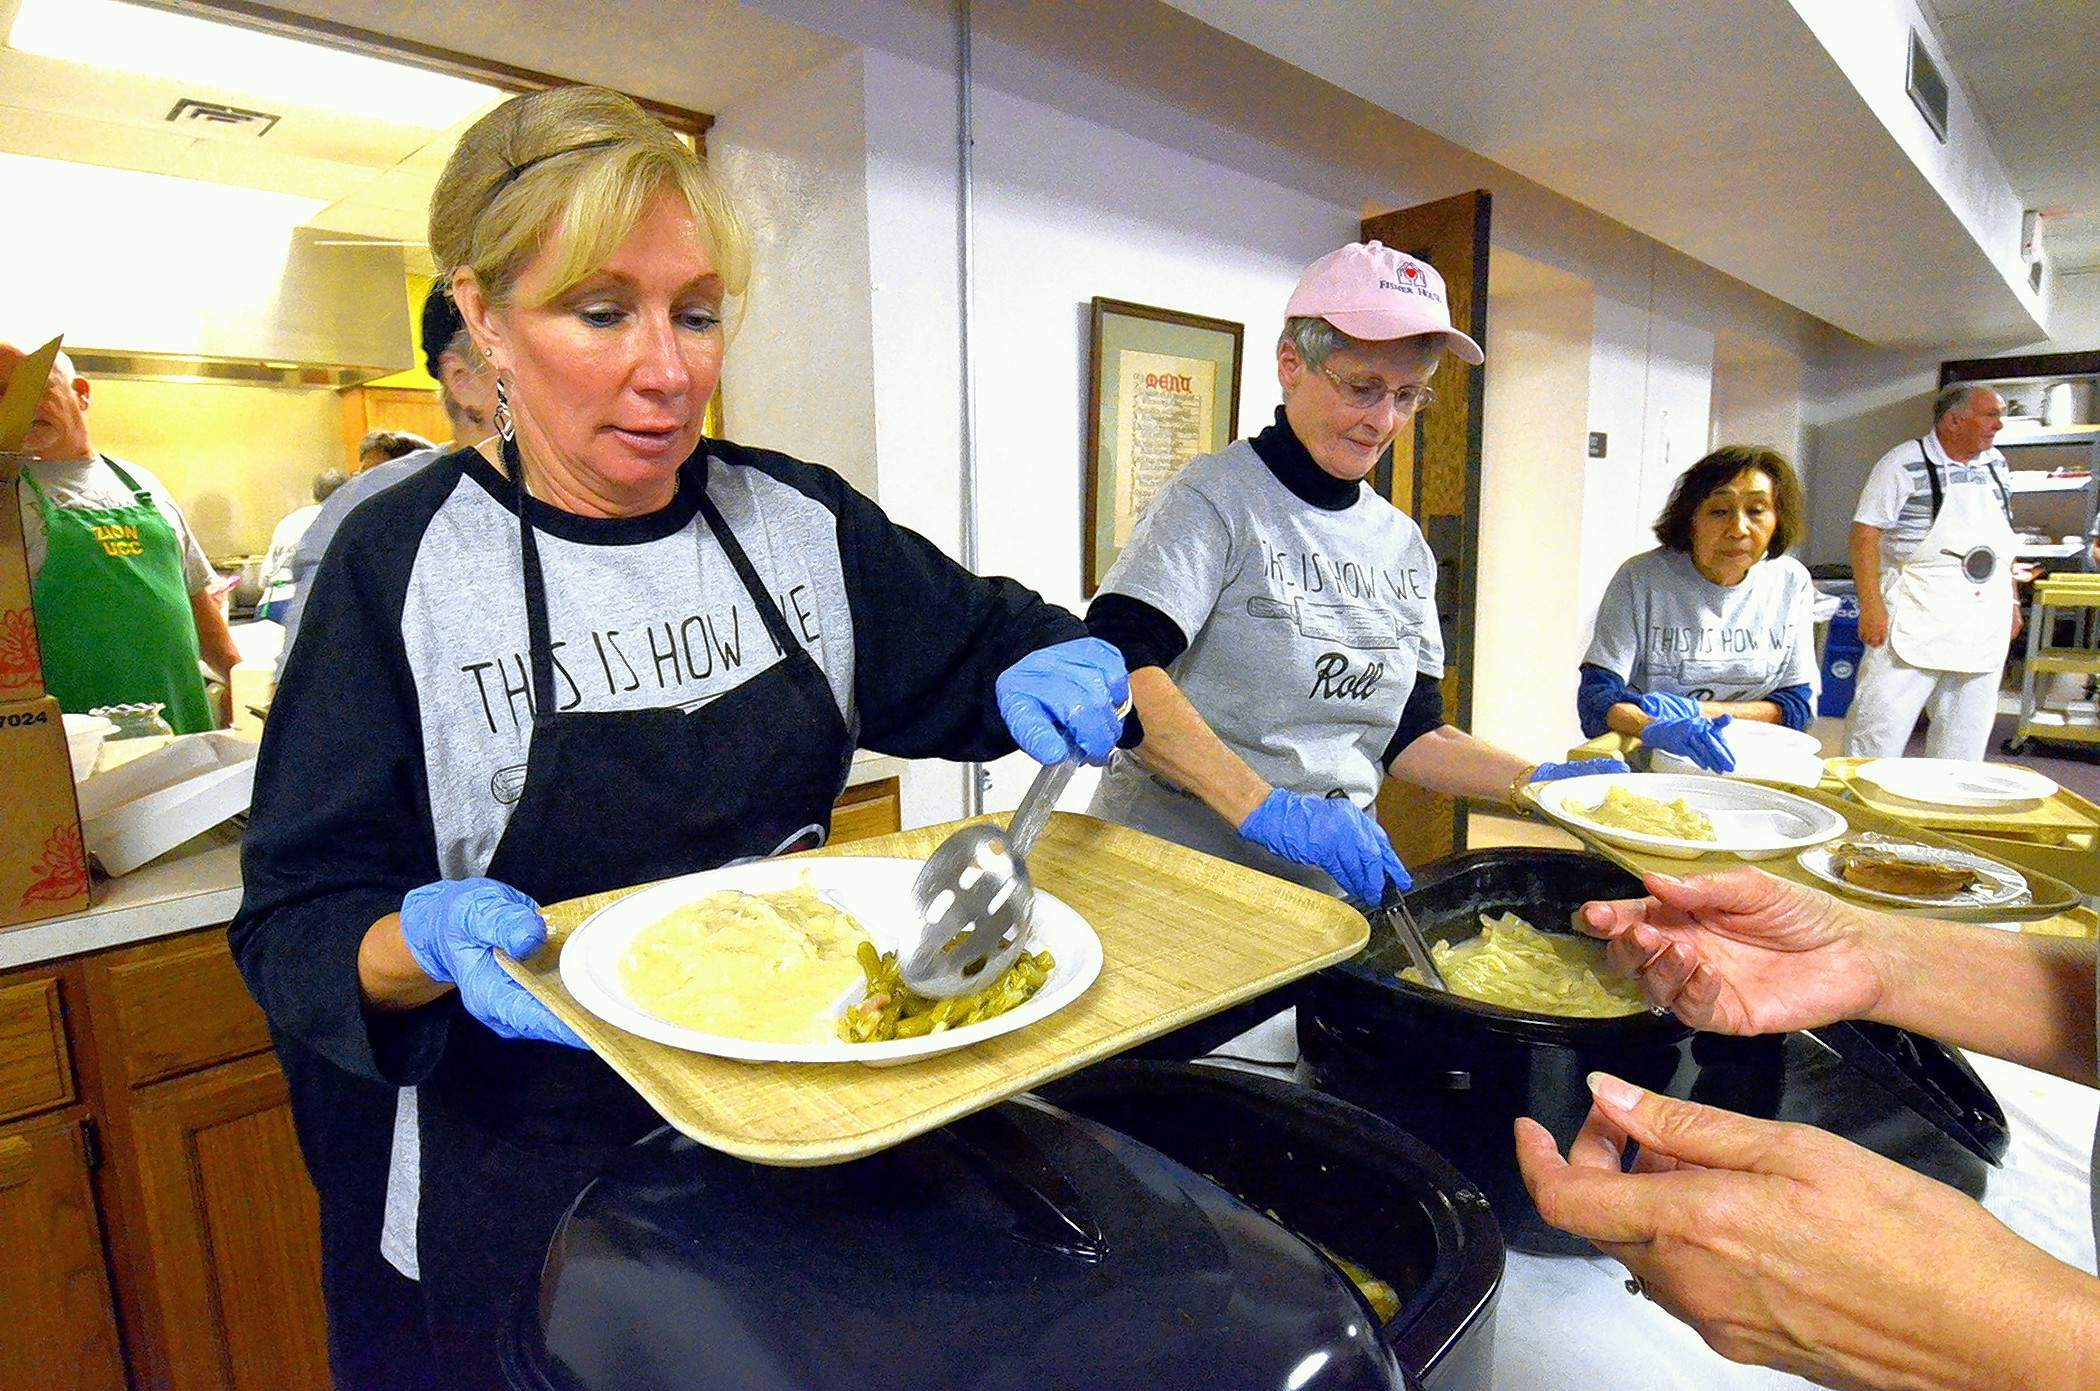 Rose Wentland, left, and Sharon Wilson were busy serving up chicken and dumplings and green beans at the Zion United Church of Christ's annual Chicken and Dumpling Dinner Friday in Marion.